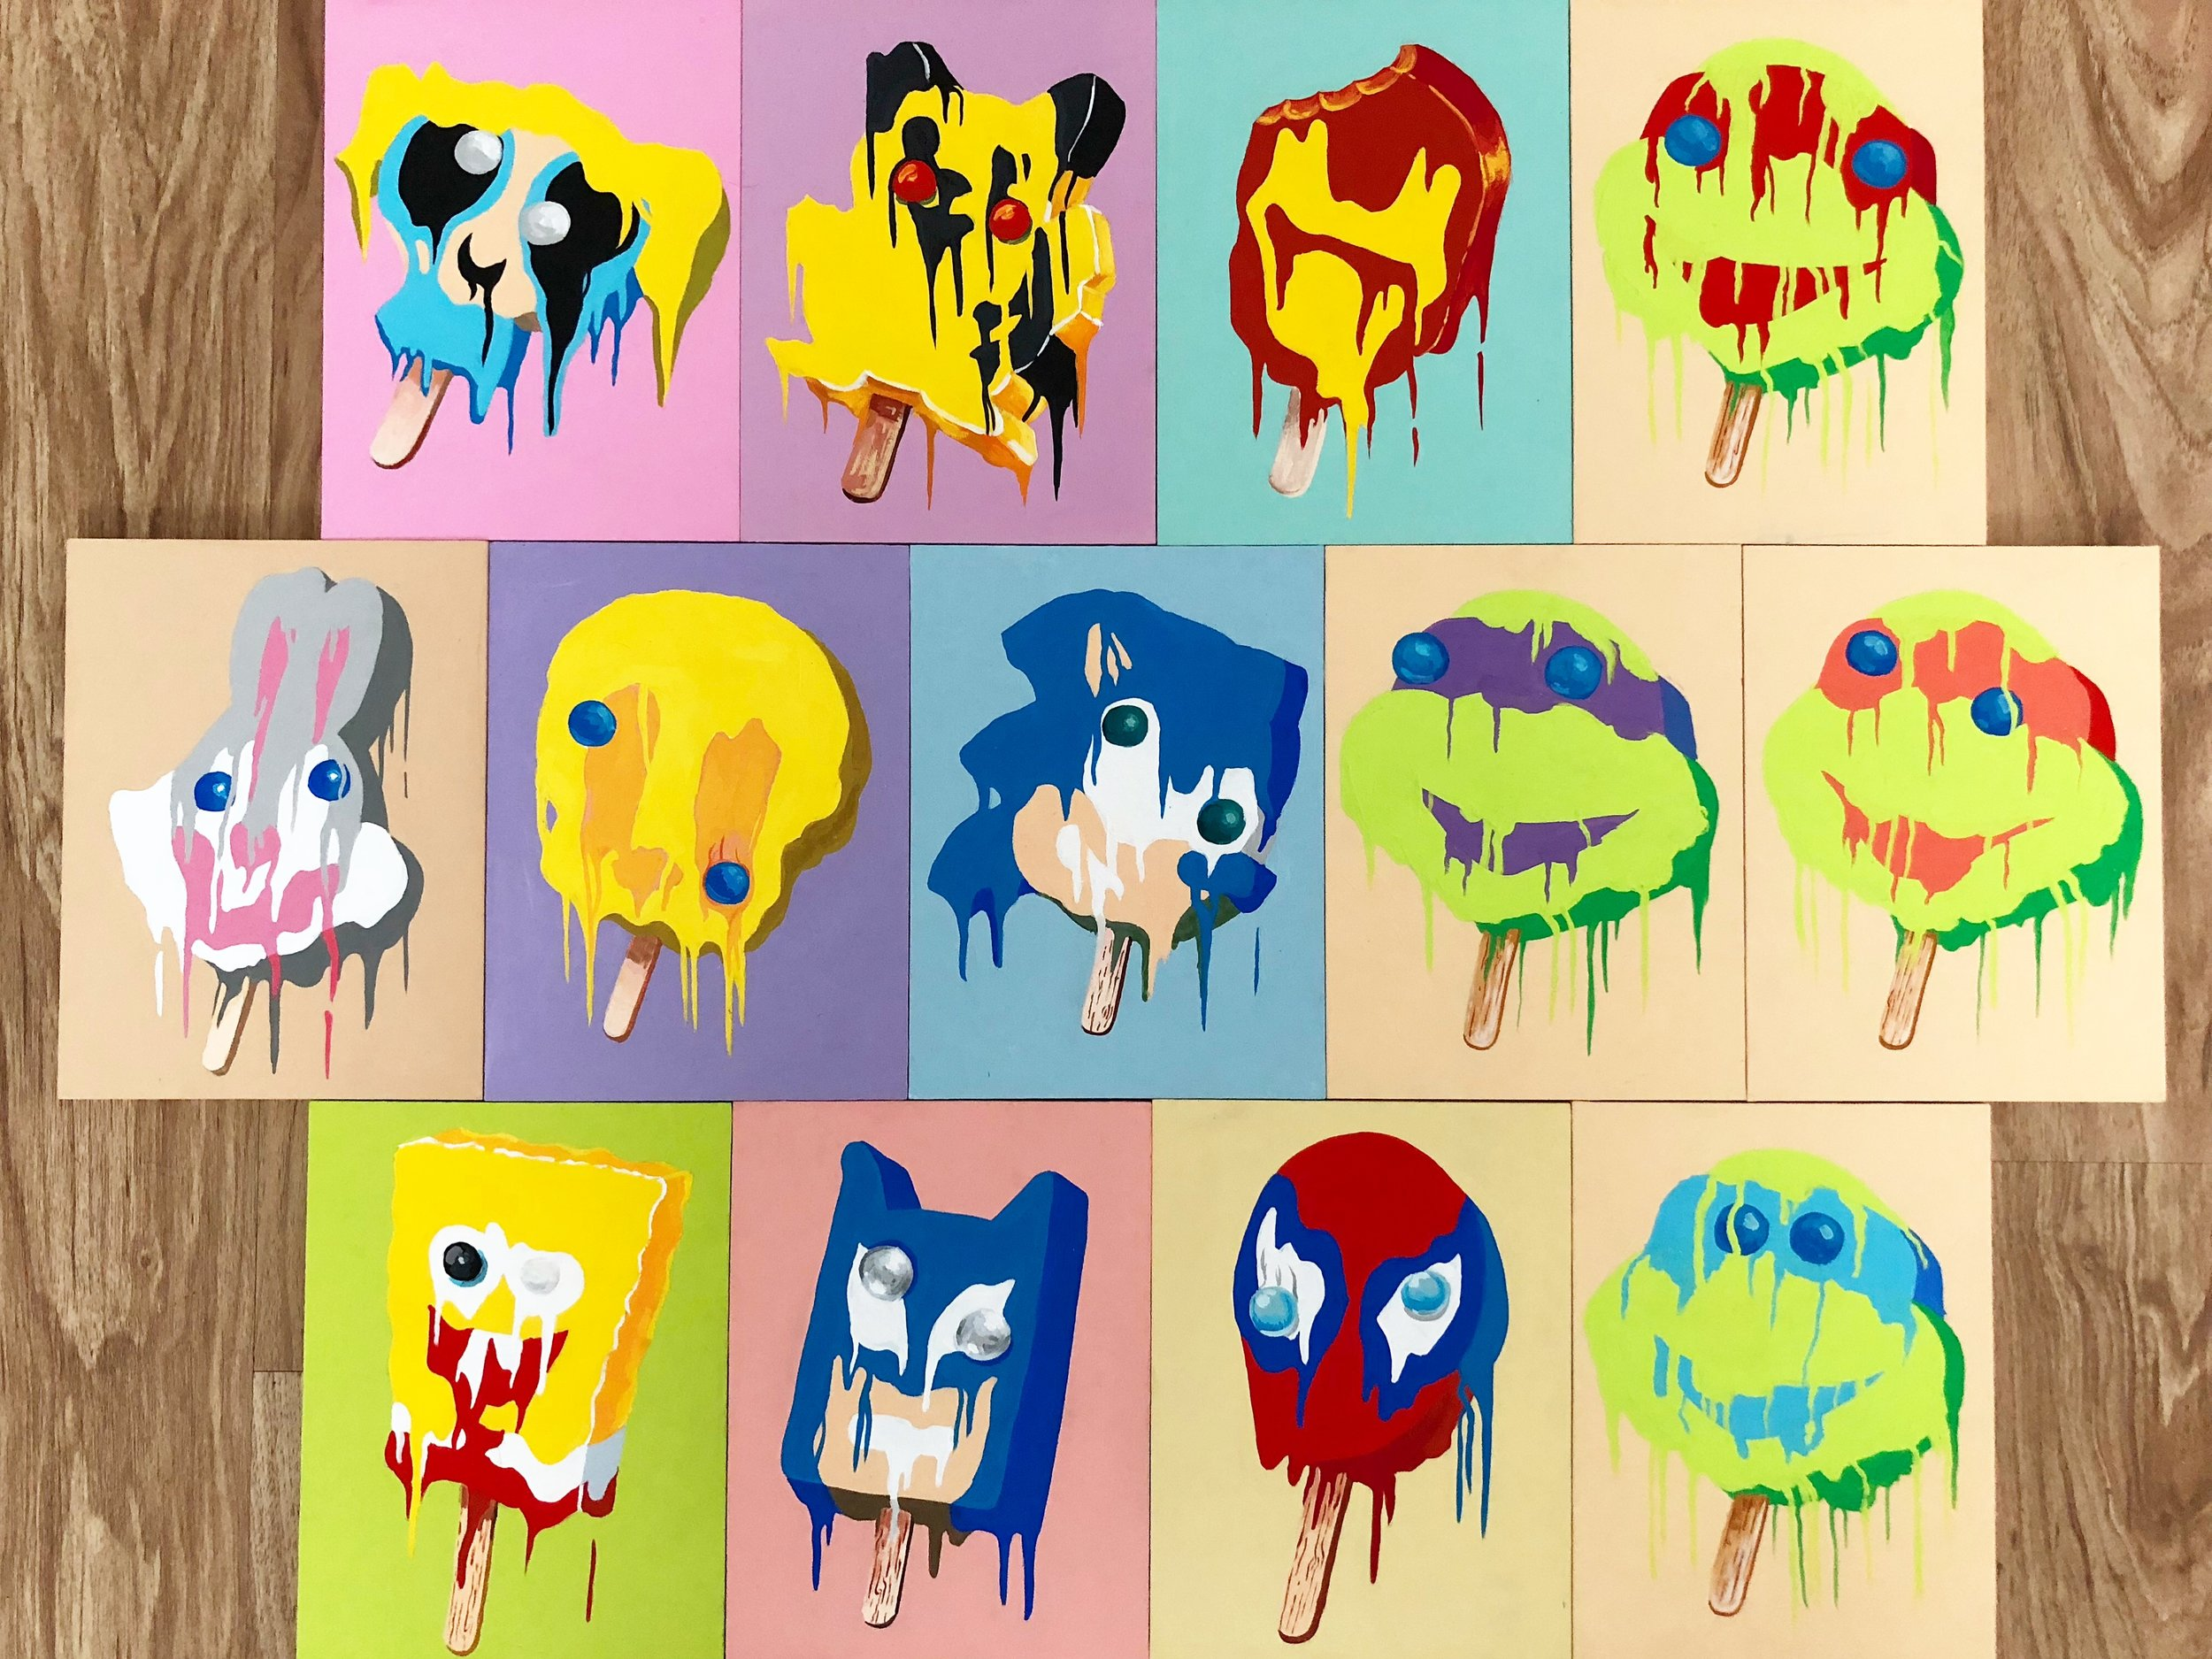 Fading out or melting out, but not forgotten! Ice Cream that was apart of every 90's kids diet. Painting them just like how everyone remembers, to feed peoples nostalgia.